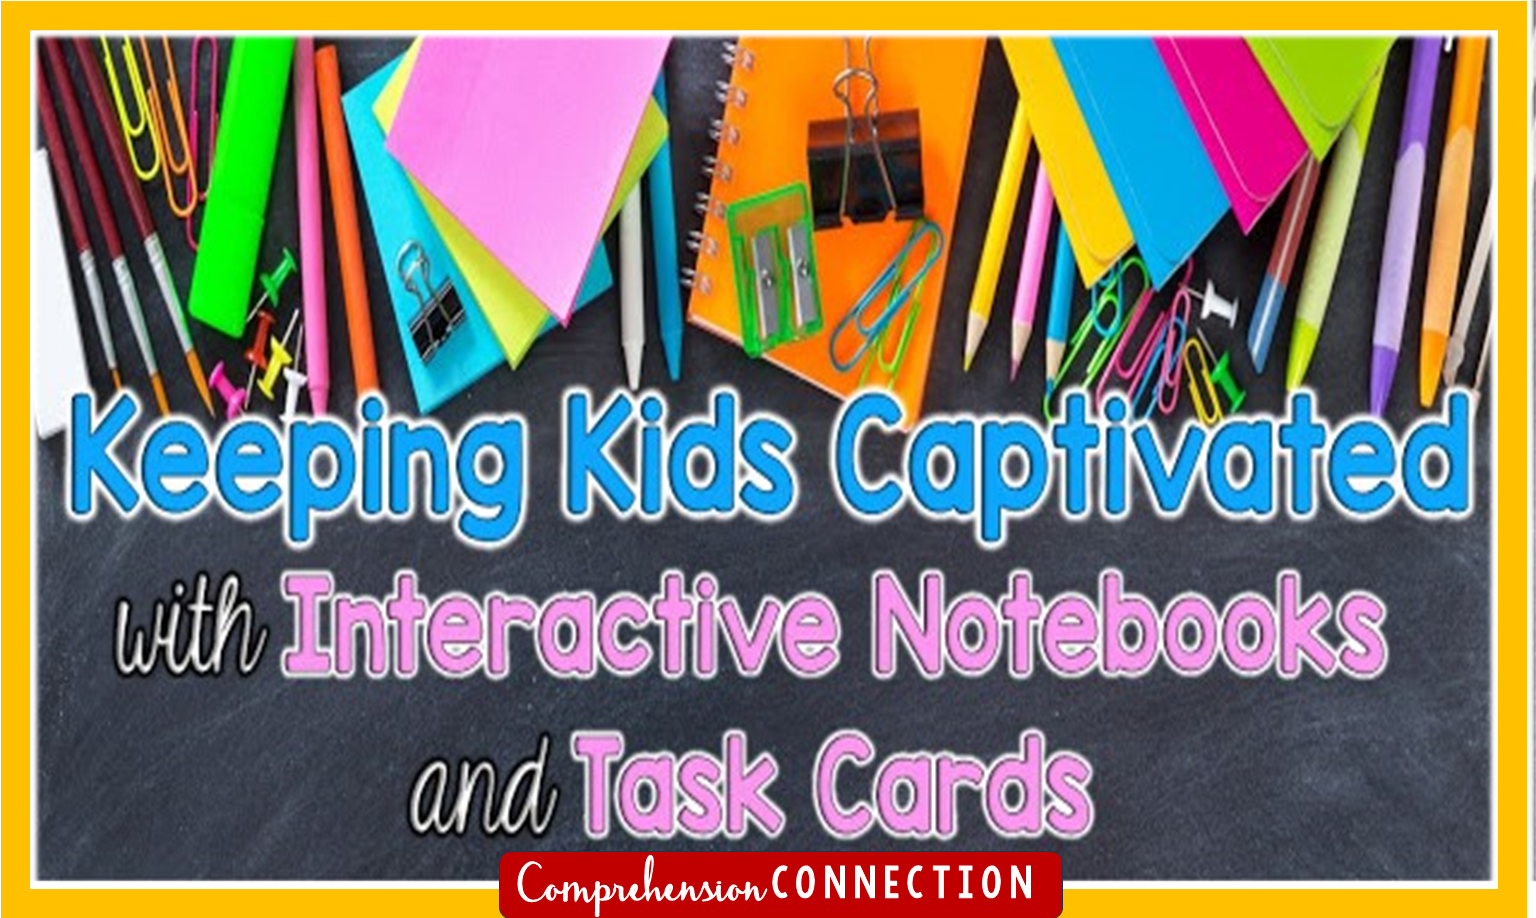 If you love interactive notebooks and task cards for keeping your kids engaged, then you'll love these tips from a few bloggy friends. Freebies included